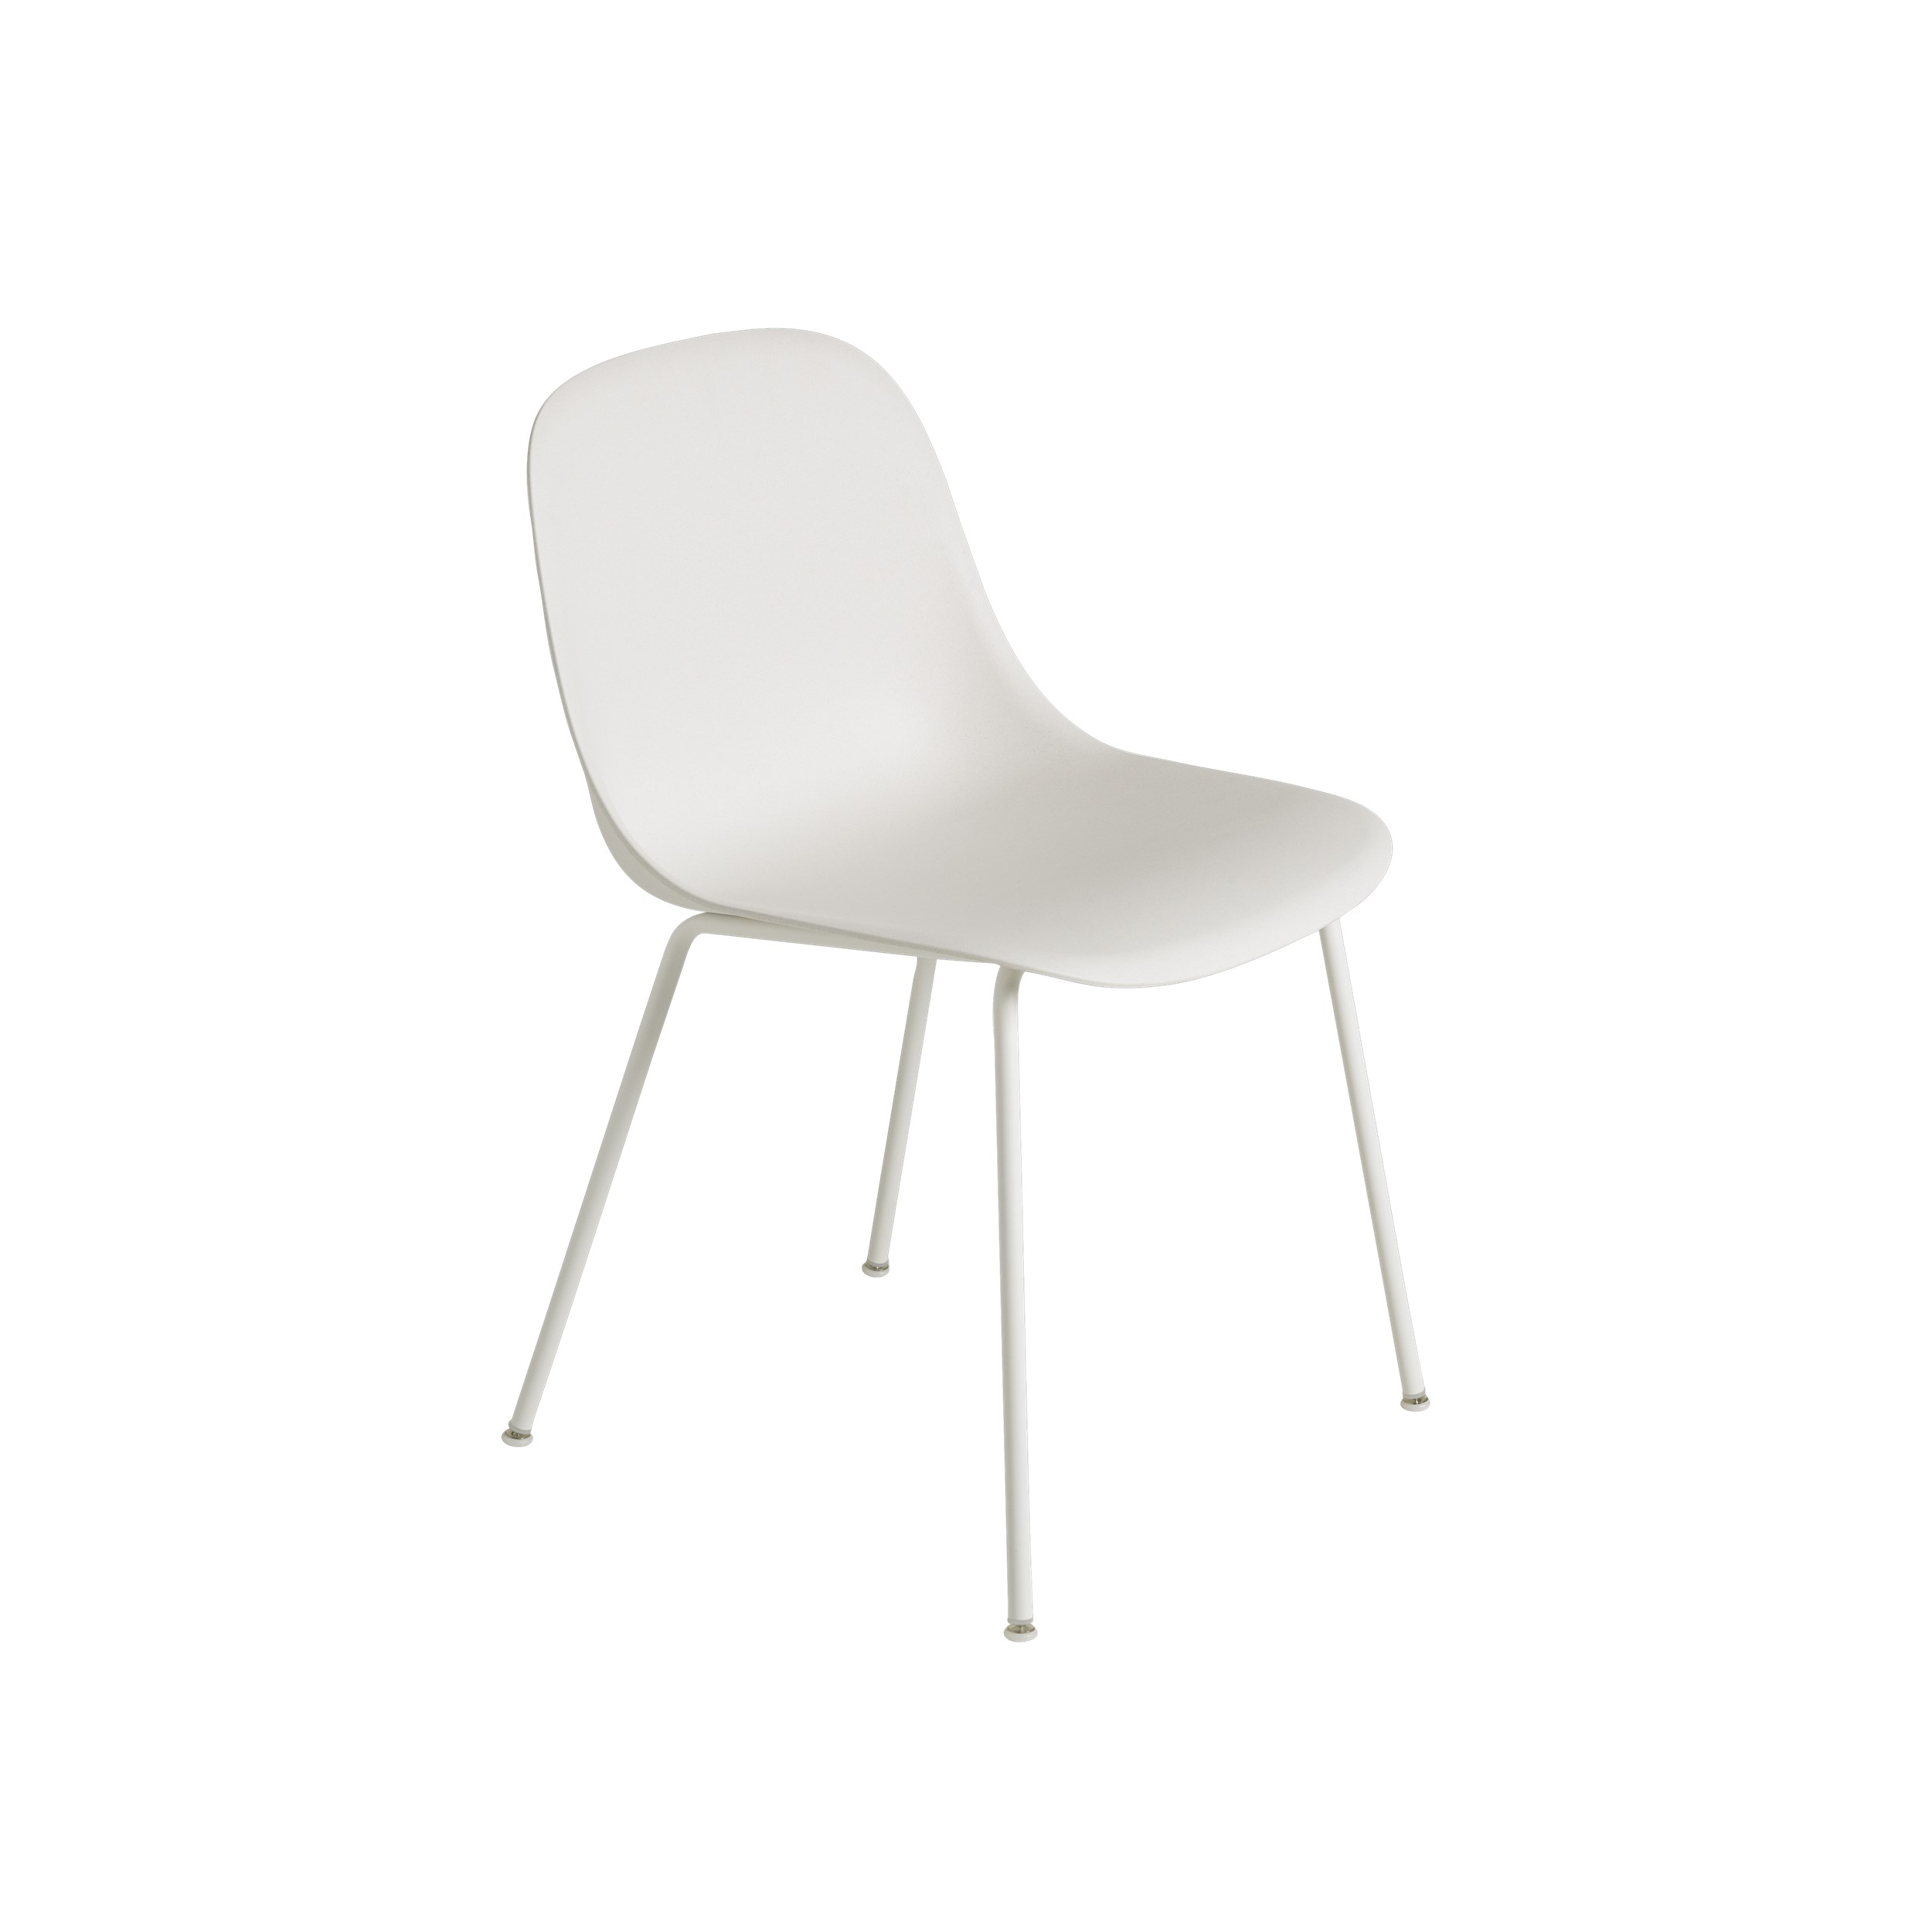 Fiber Side Chair, Tube b., White